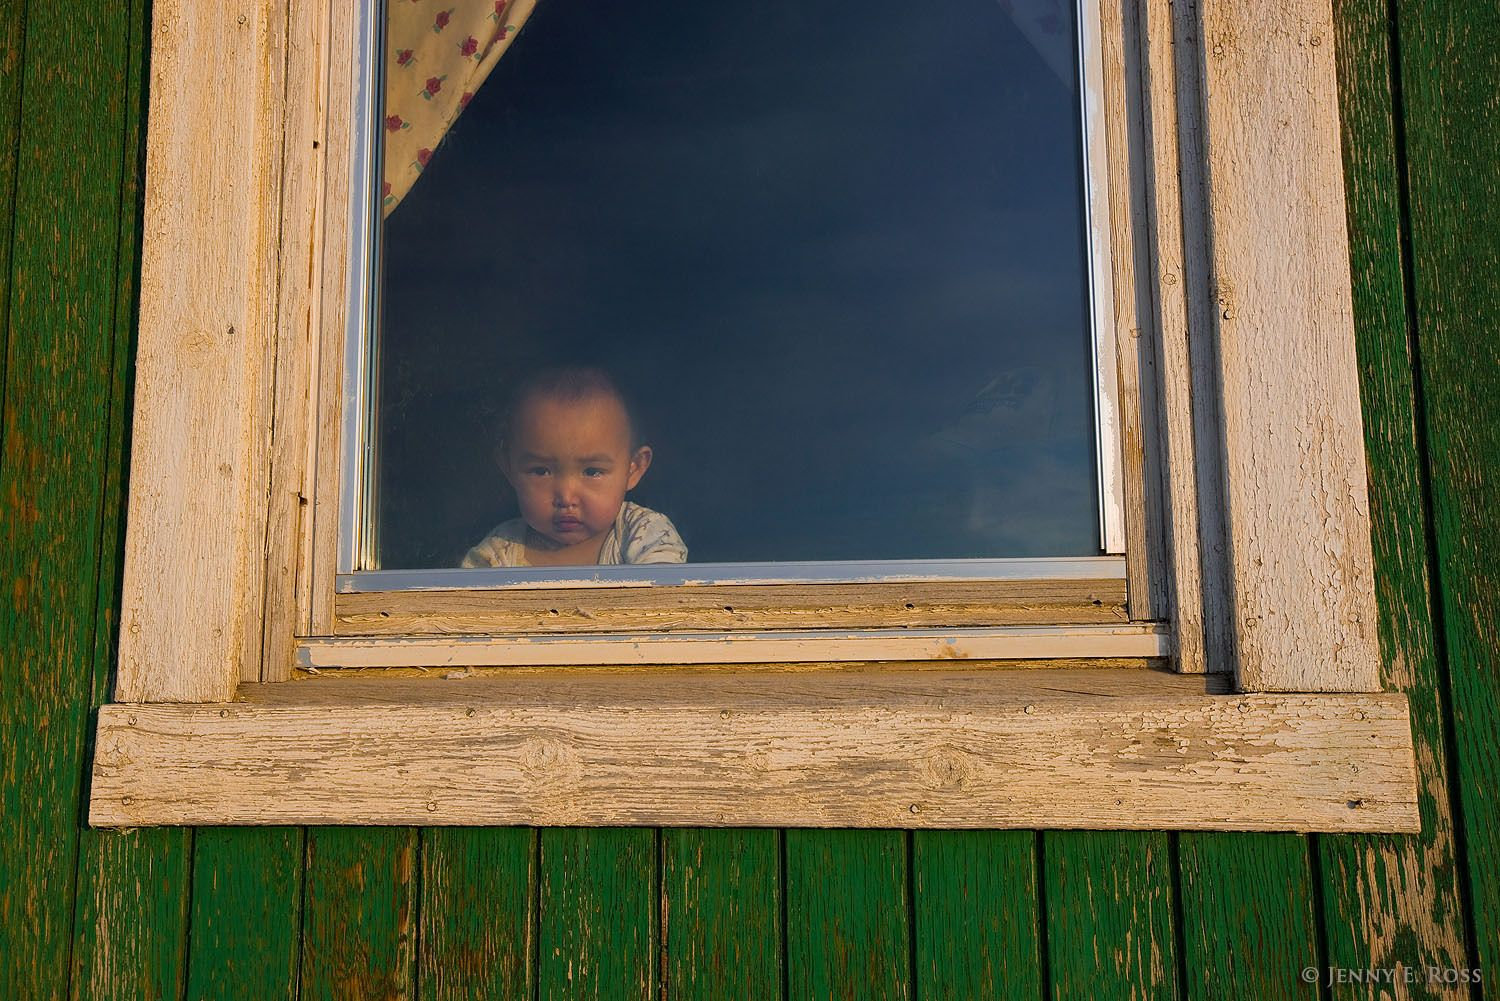 A young Inuit child looks out a window in Qaanaaq, Northwest Greenland.